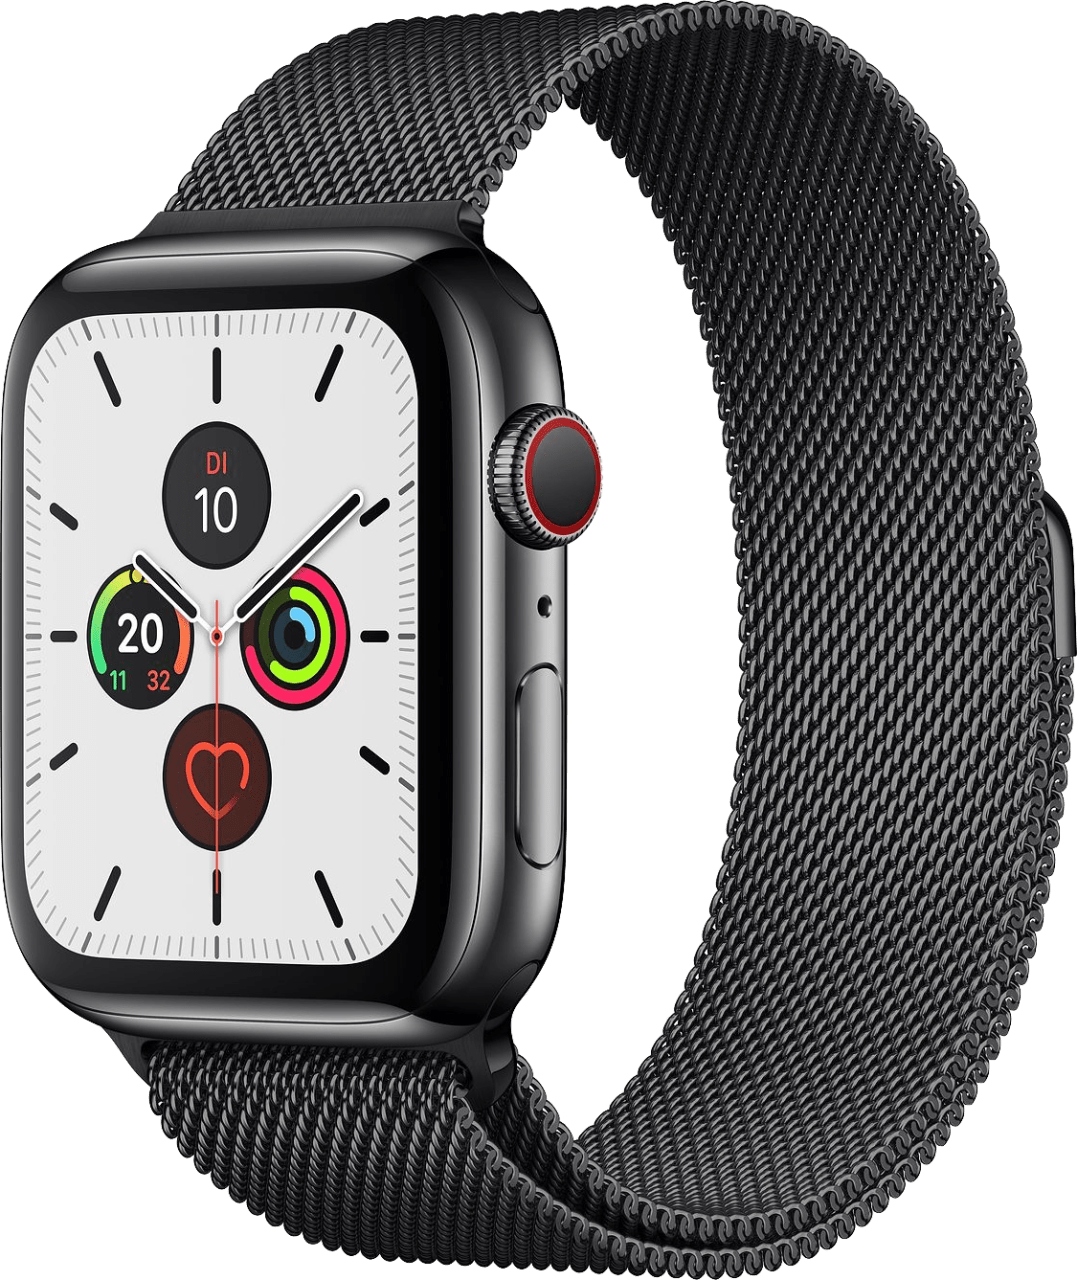 Space Black Apple Watch Series 5 GPS + Cellular, 40mm.2